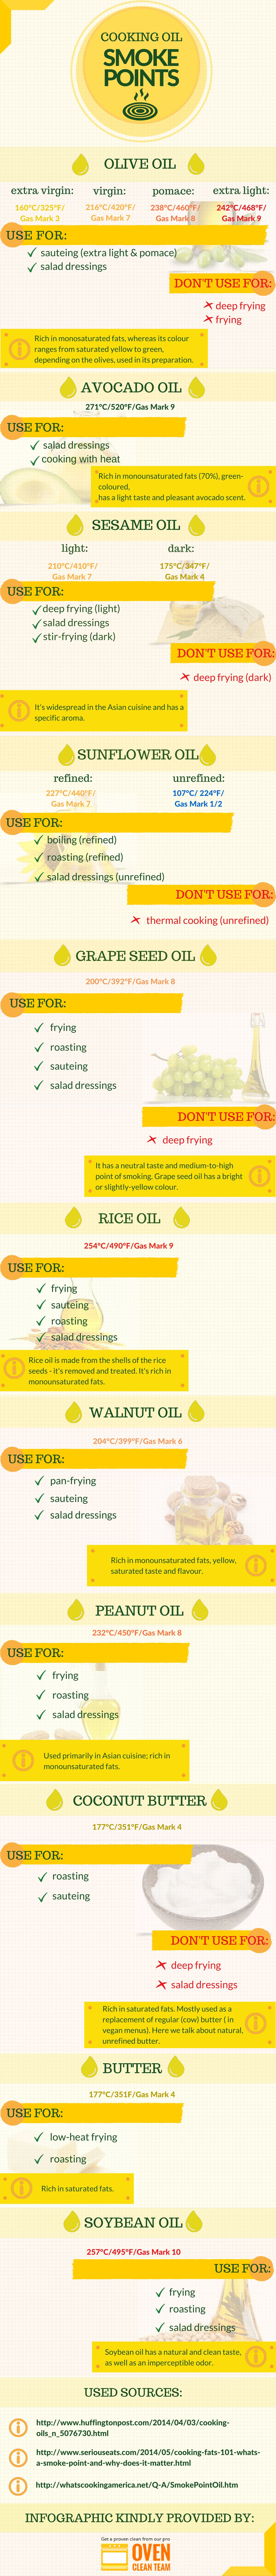 Cooking Oil Smoke Points